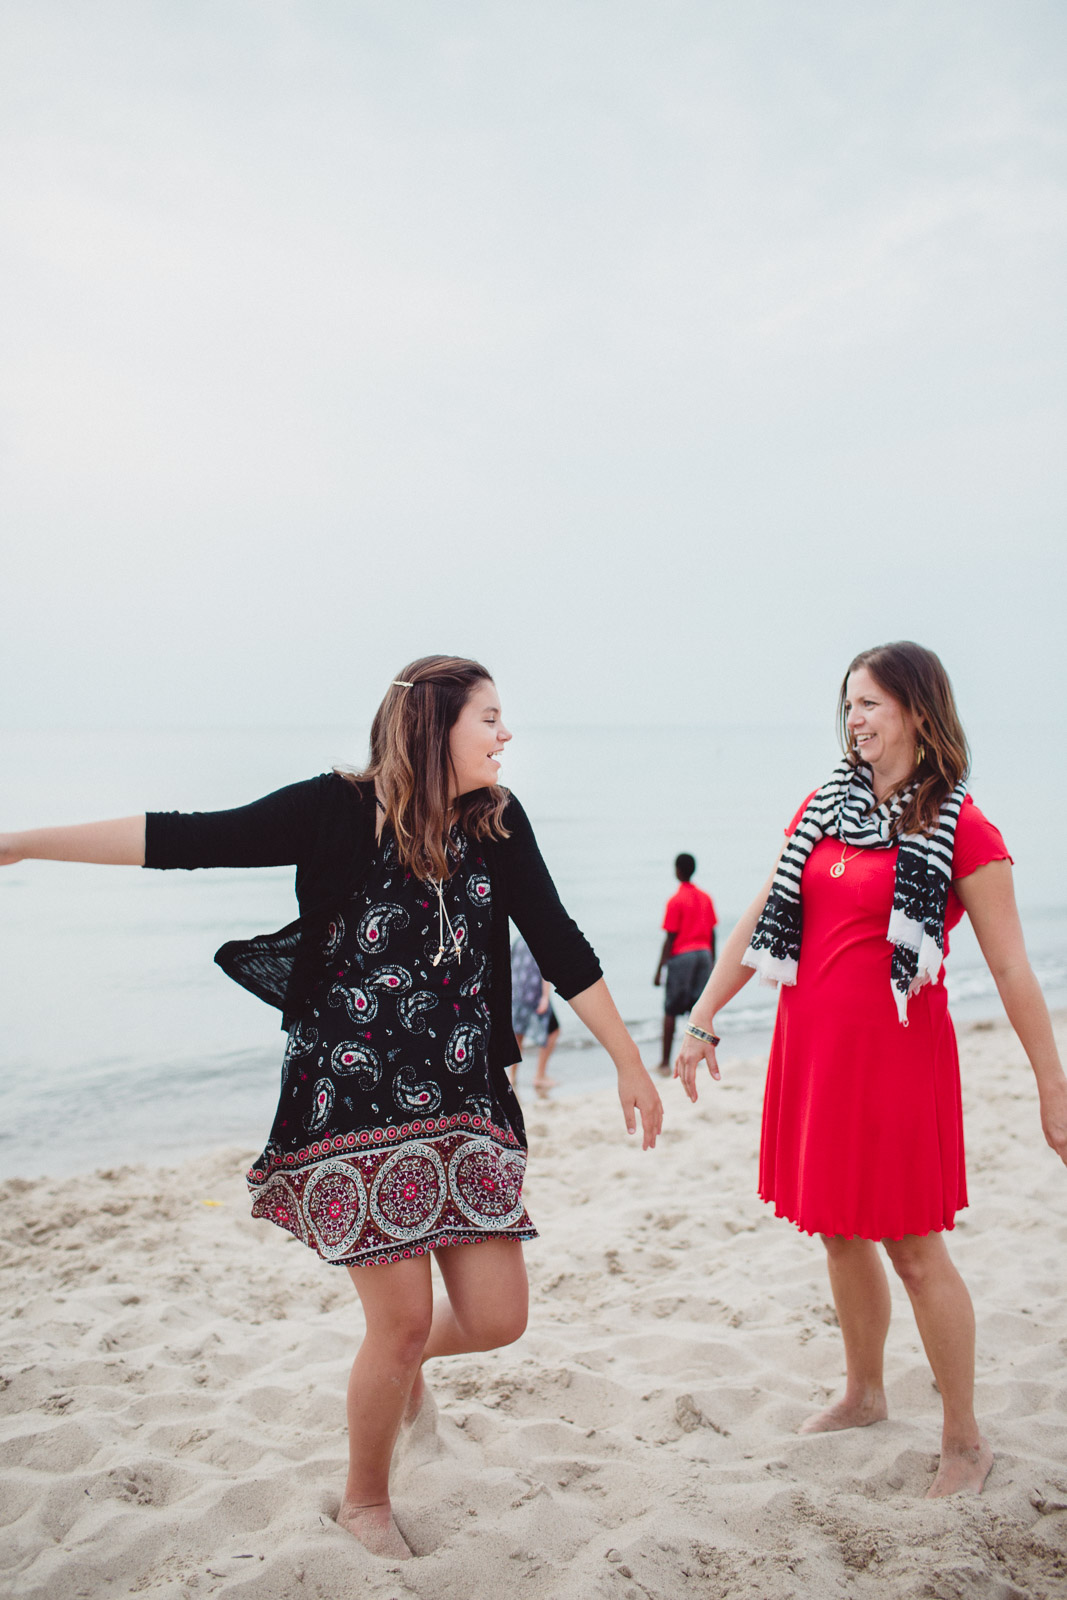 a mother and daughter dancing together on the beach